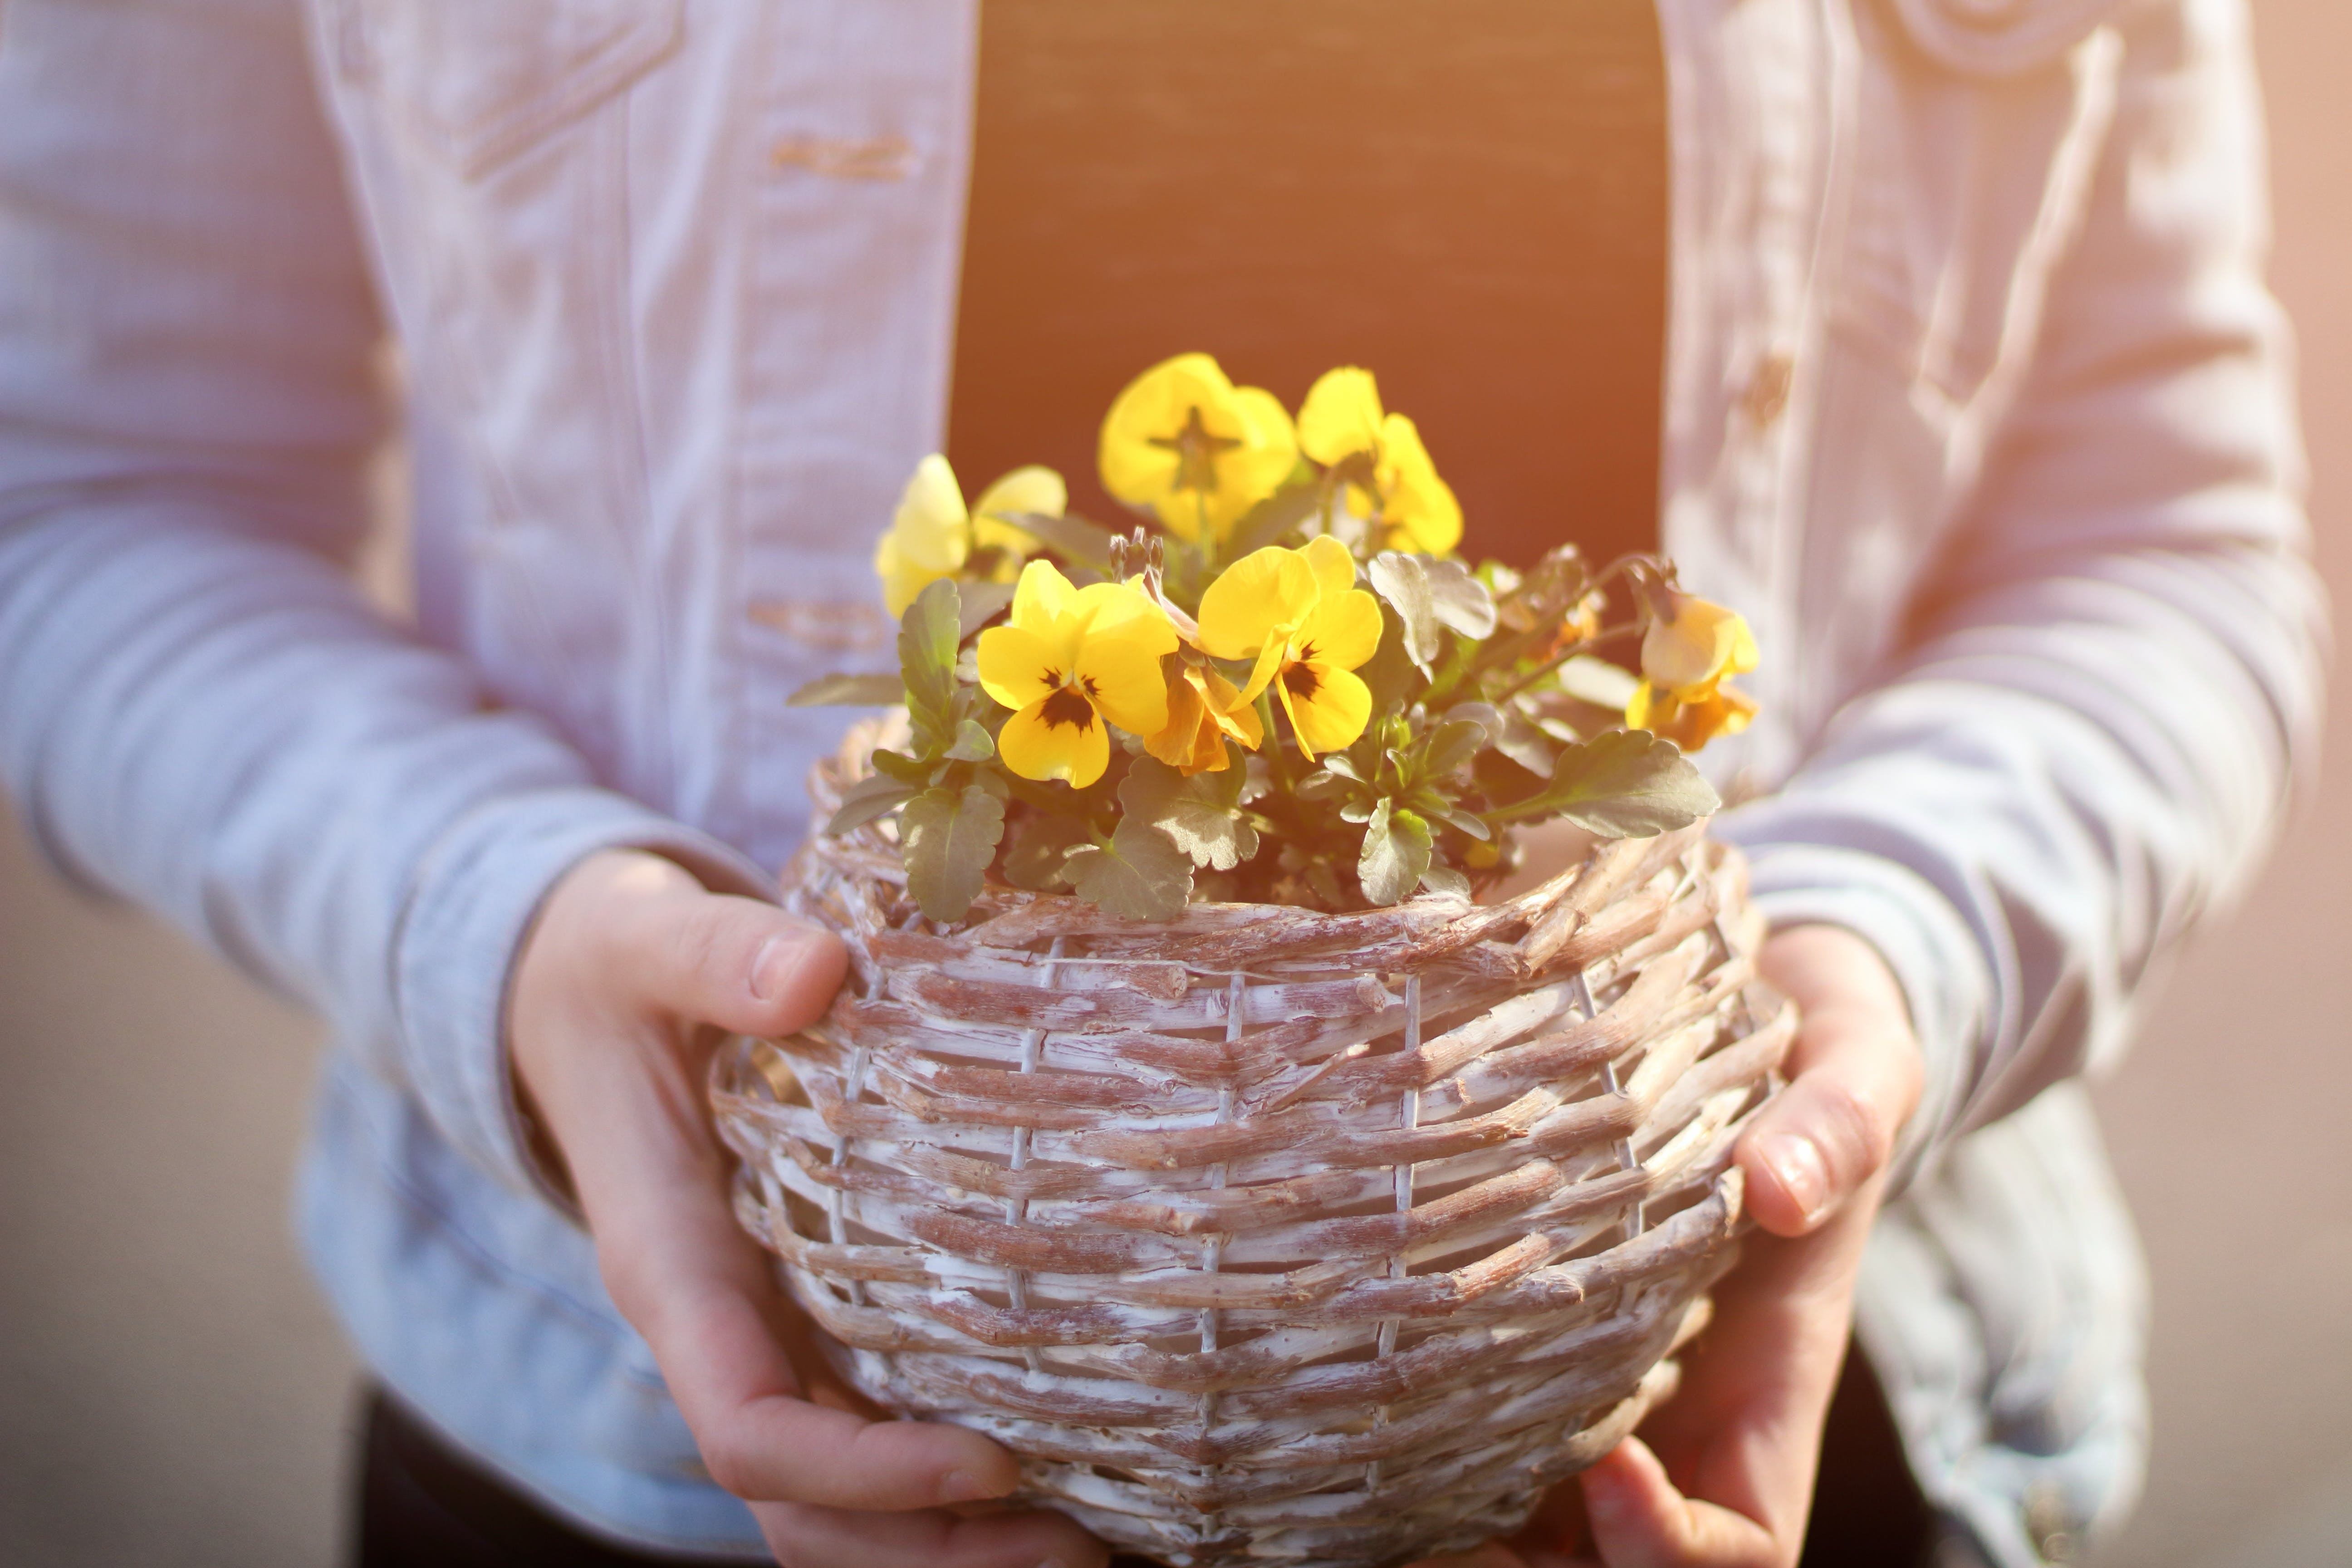 Person Holding Pot With Yellow Petaled Flowers